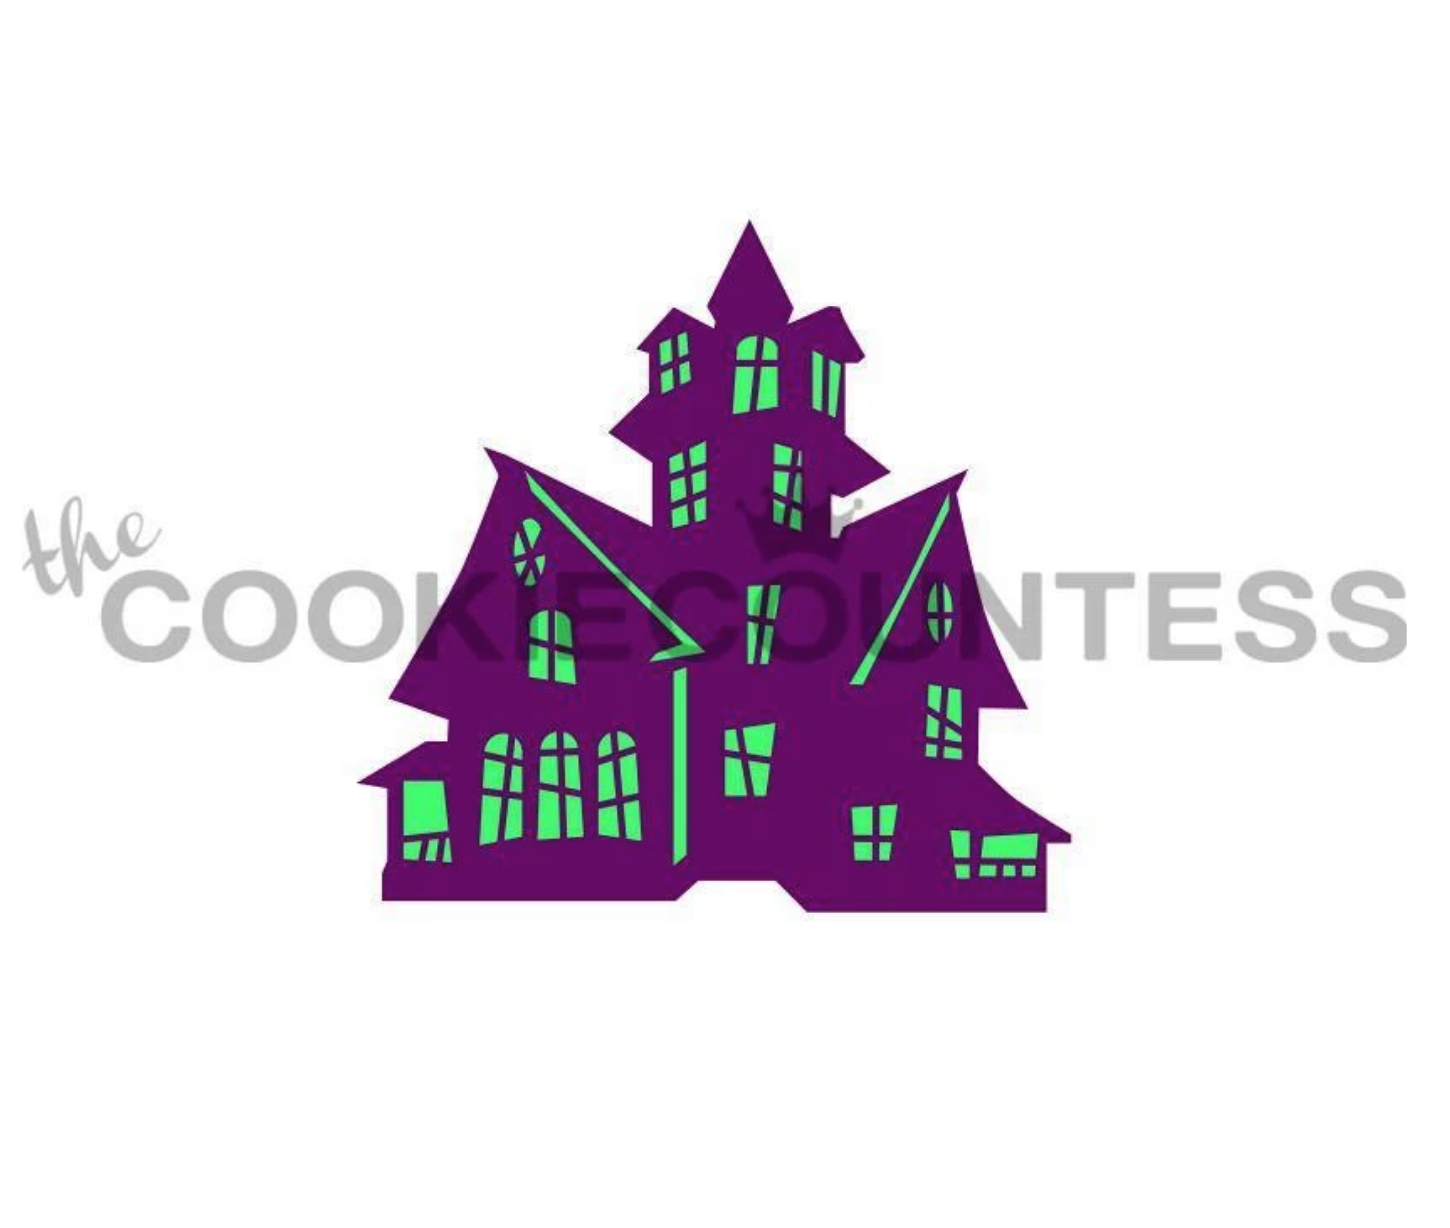 Haunted House Stencil  by Cookie Countess - 2 Piece